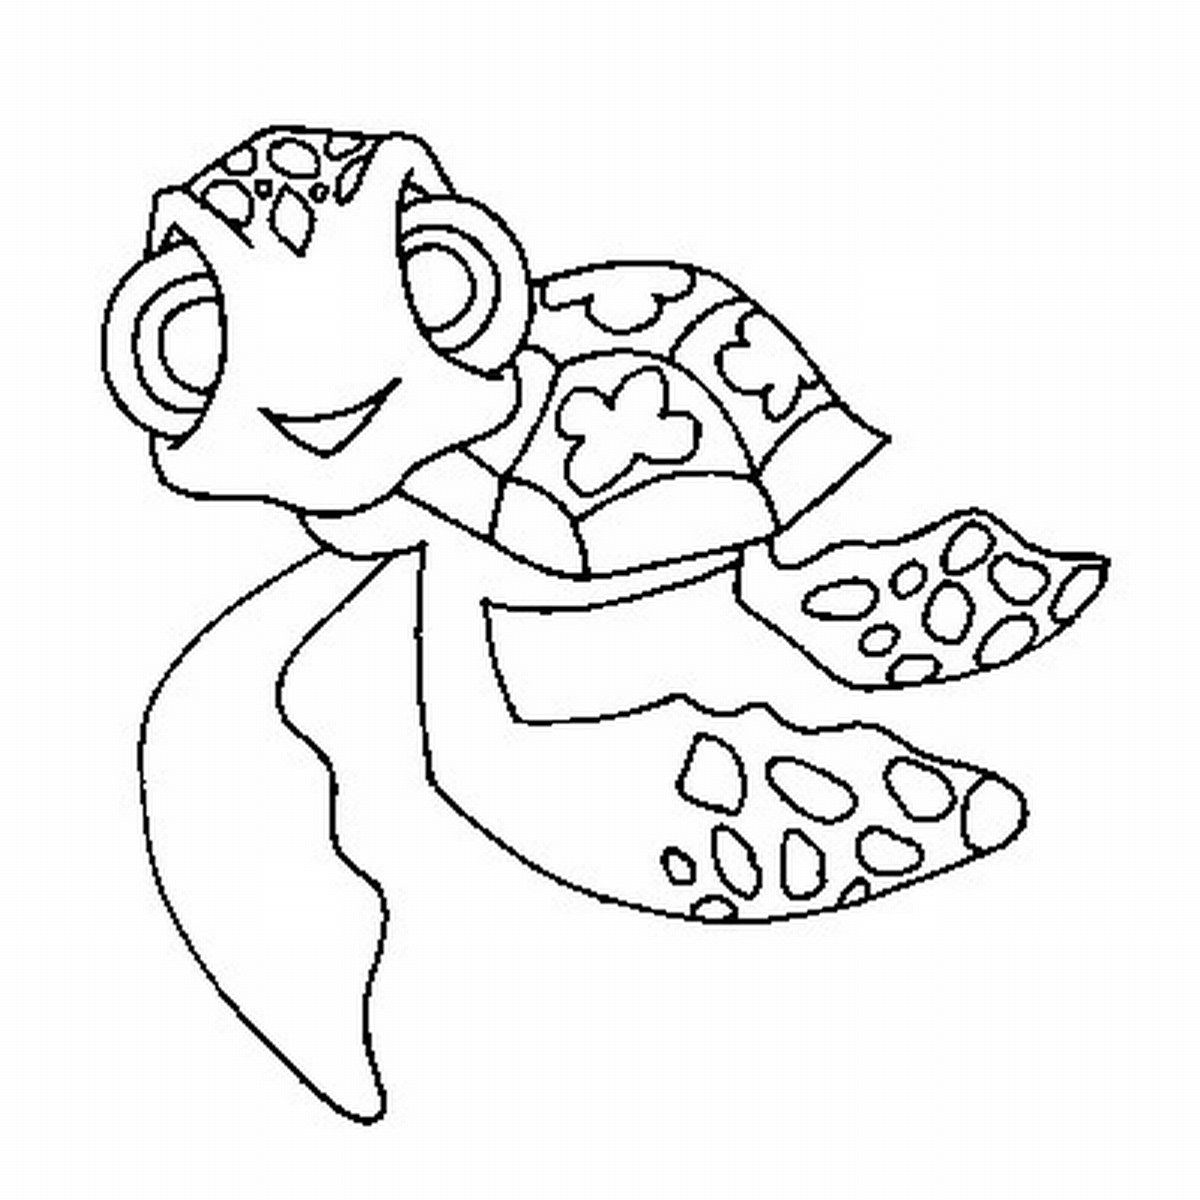 nemo coloring pages to print finding nemo coloring pages. Black Bedroom Furniture Sets. Home Design Ideas